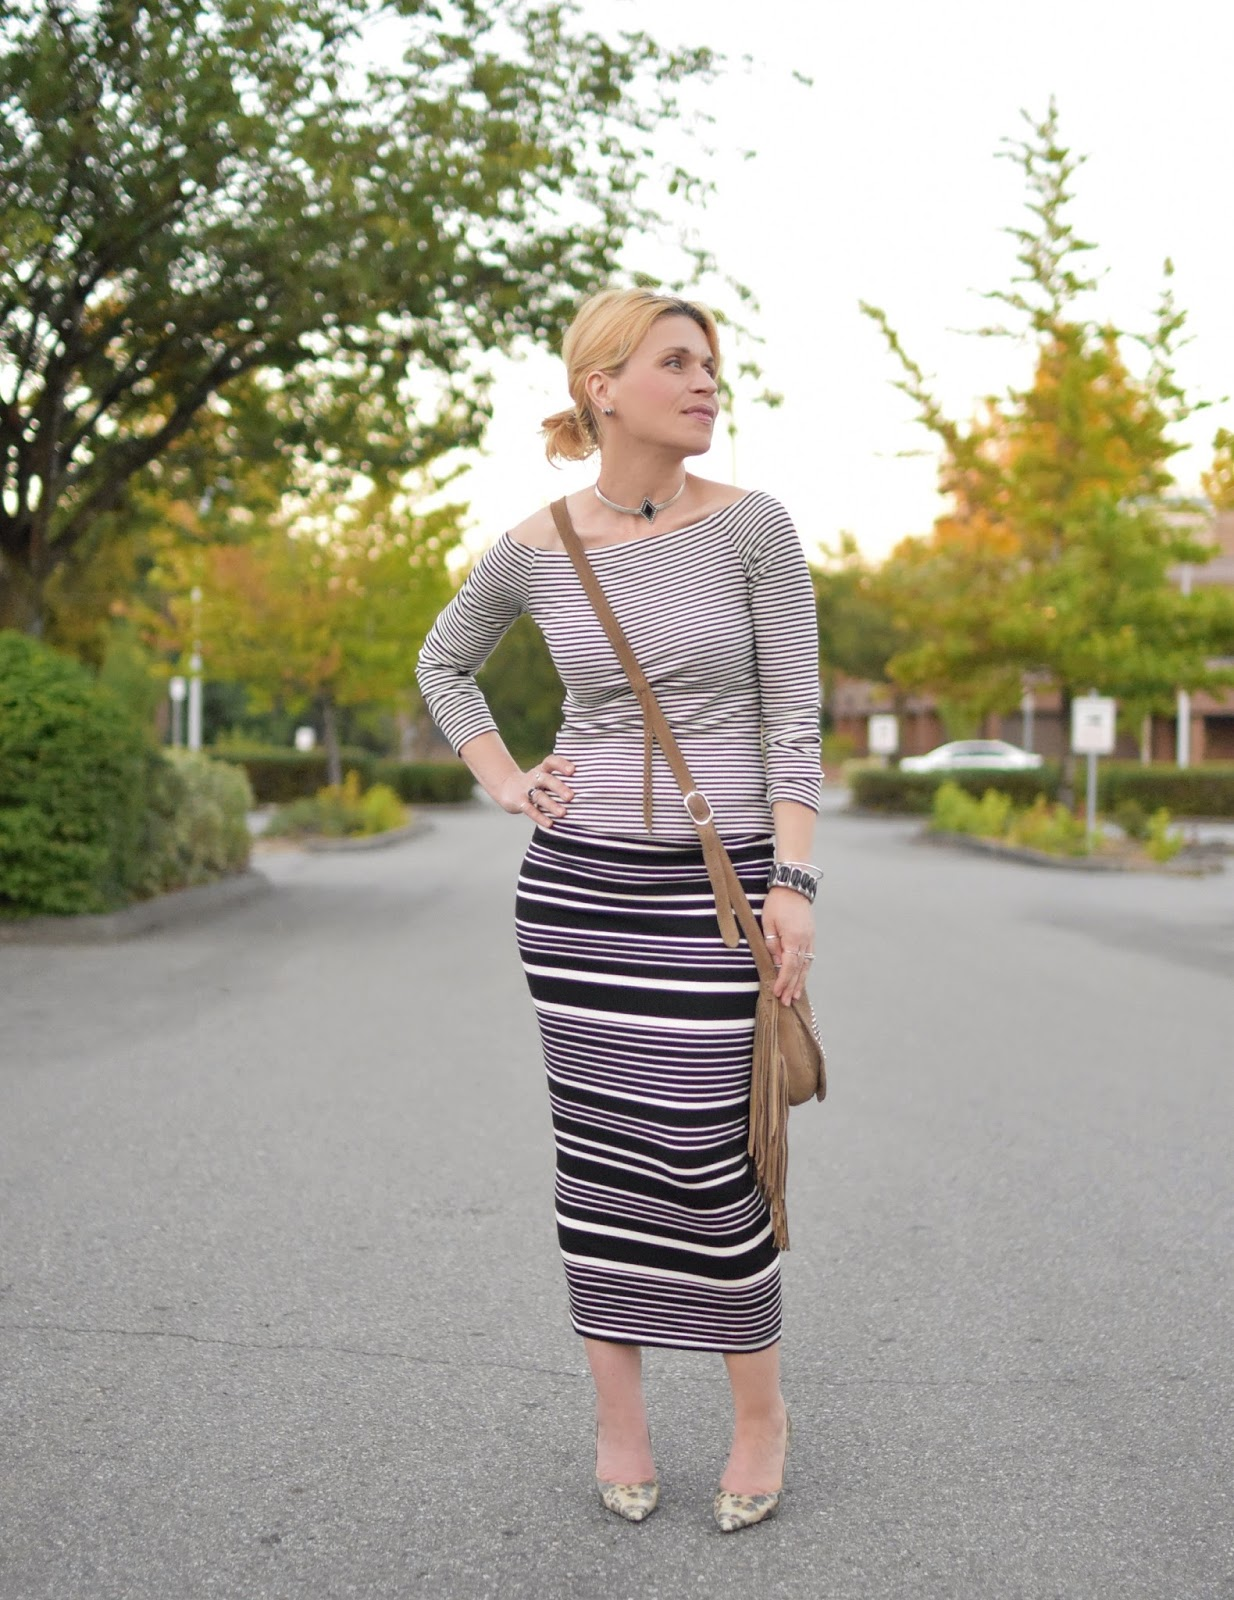 Monika Faulkner styles a striped midi pencil skirt with a striped off-the-shoulder top, reptile pumps, and fringy cross-body bag